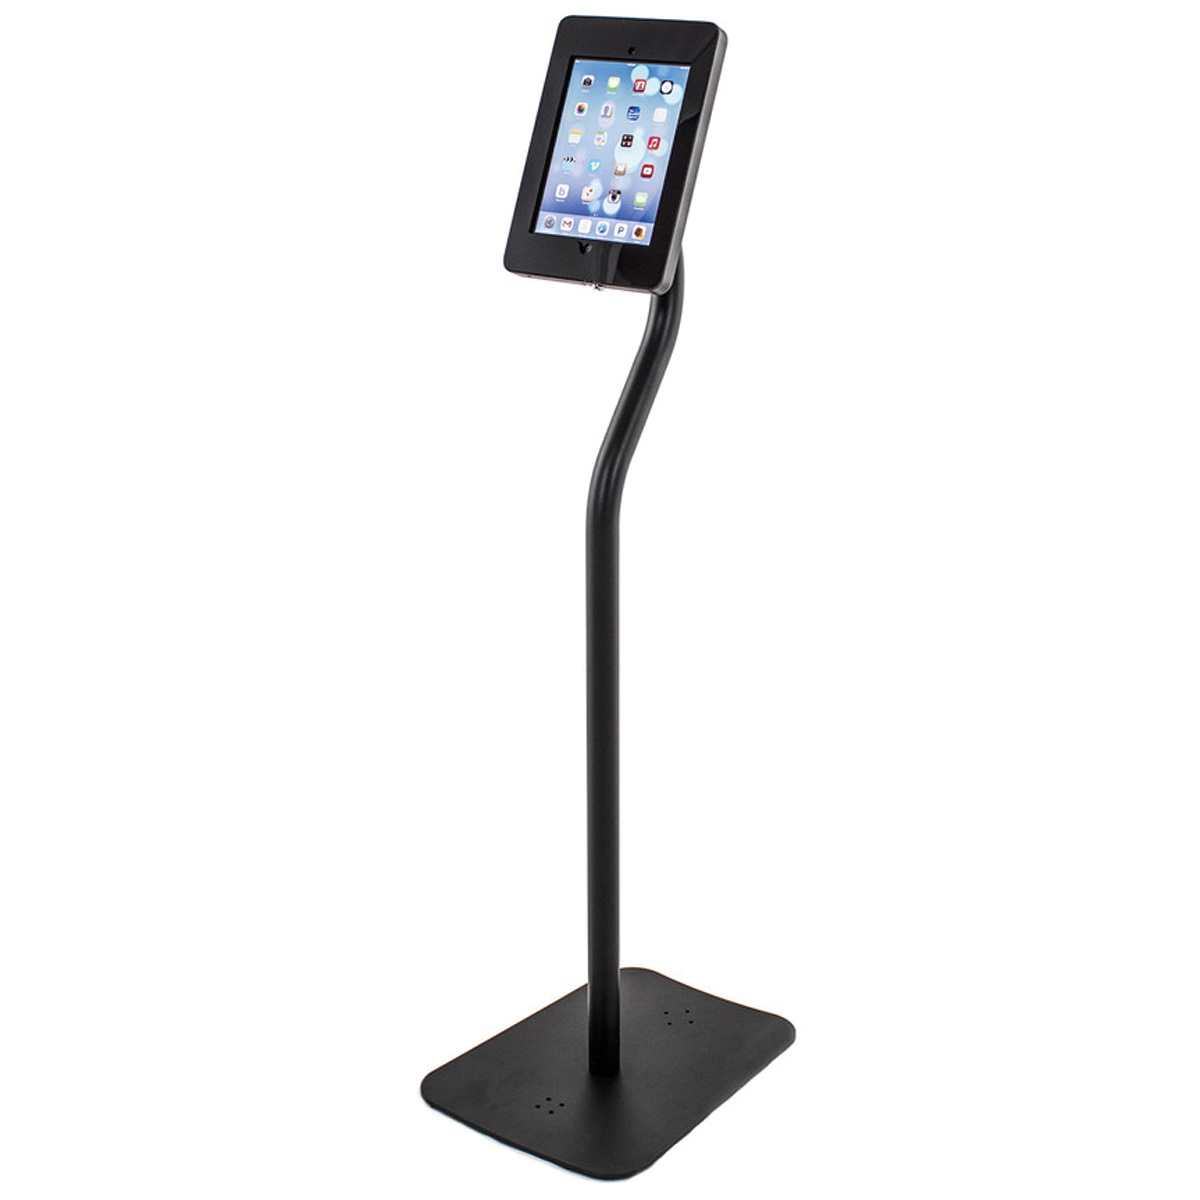 Jotter Tablet Display